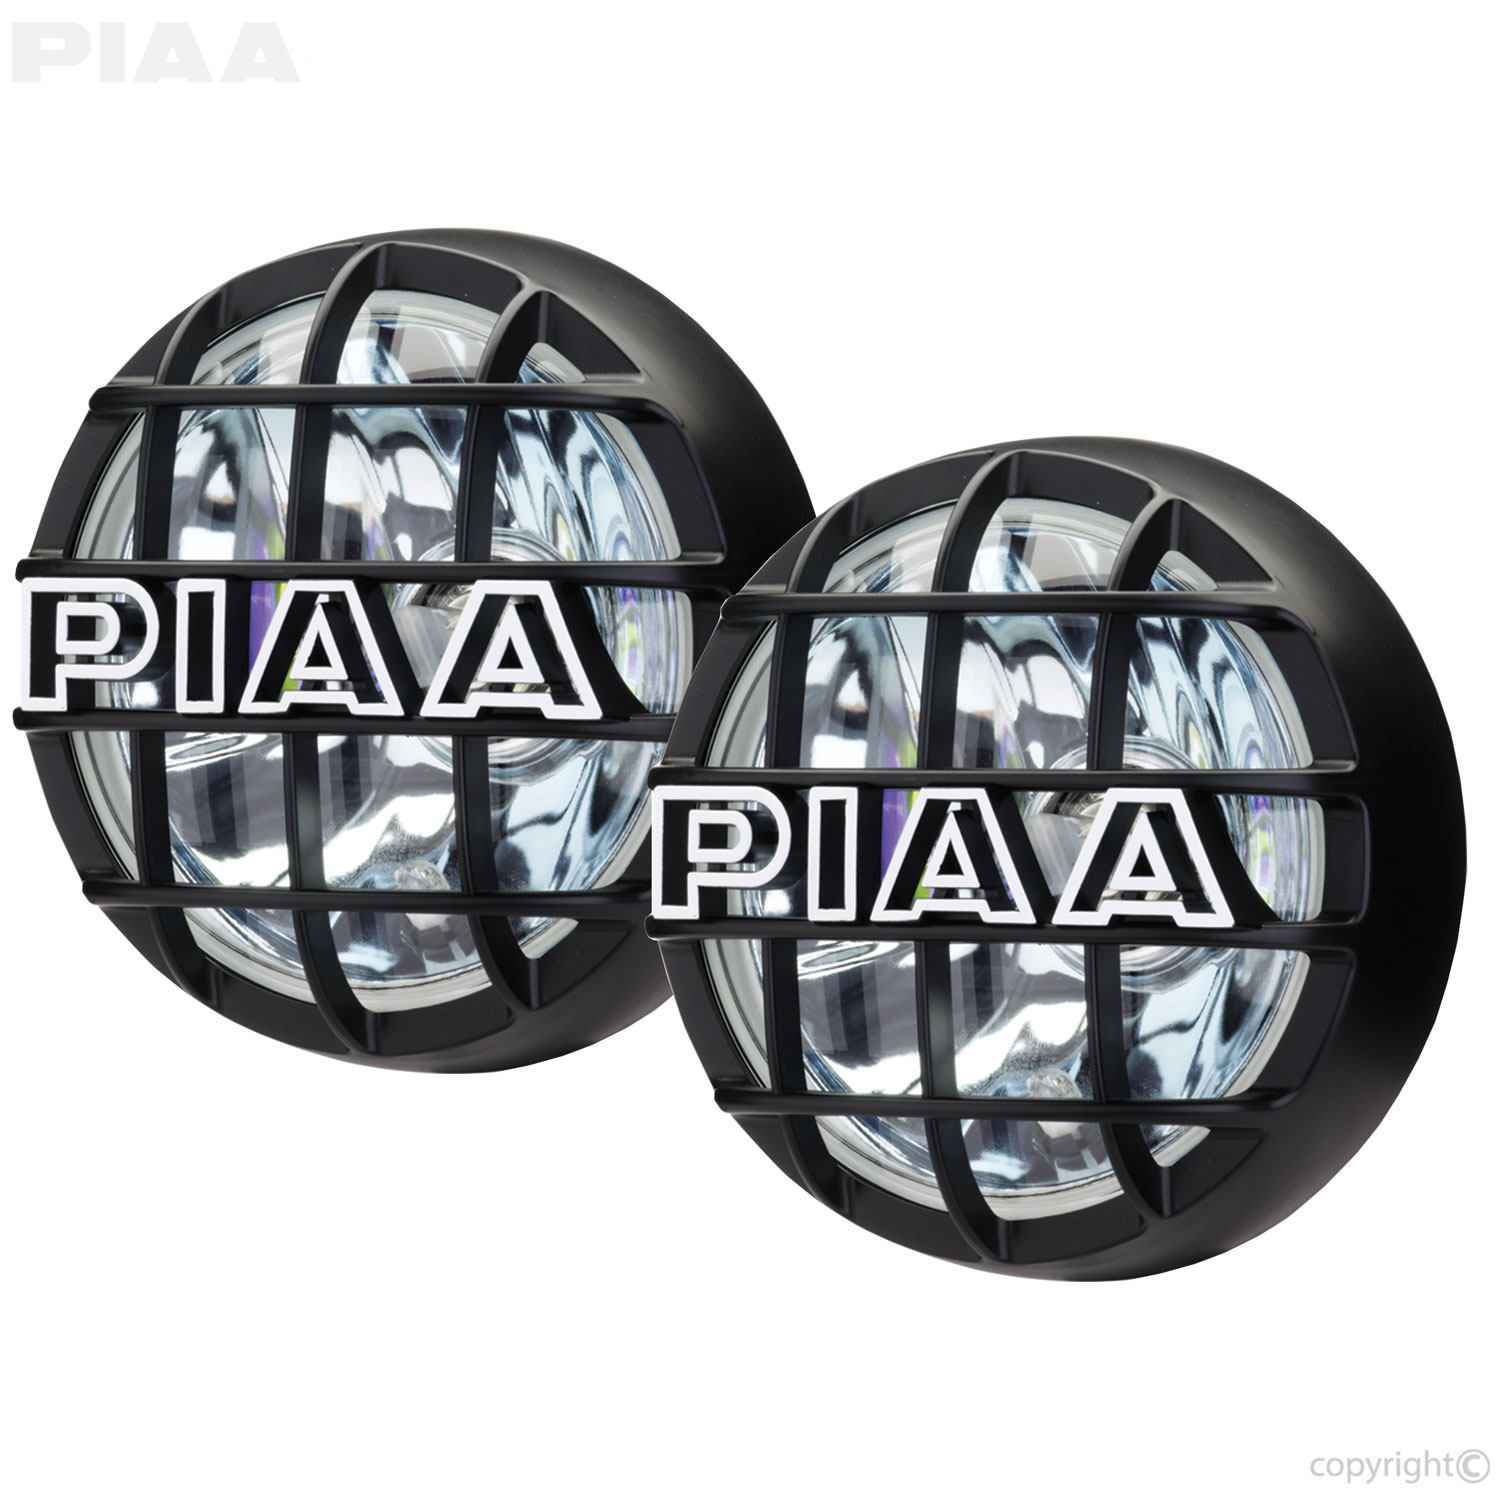 piaa 05250 525 dual hr jpg lr t bw 1000 w 1000 bh 1000 h 1000 piaa switch 30034 wiring diagram wiring diagram and schematic piaa light harness switch craluxlighting